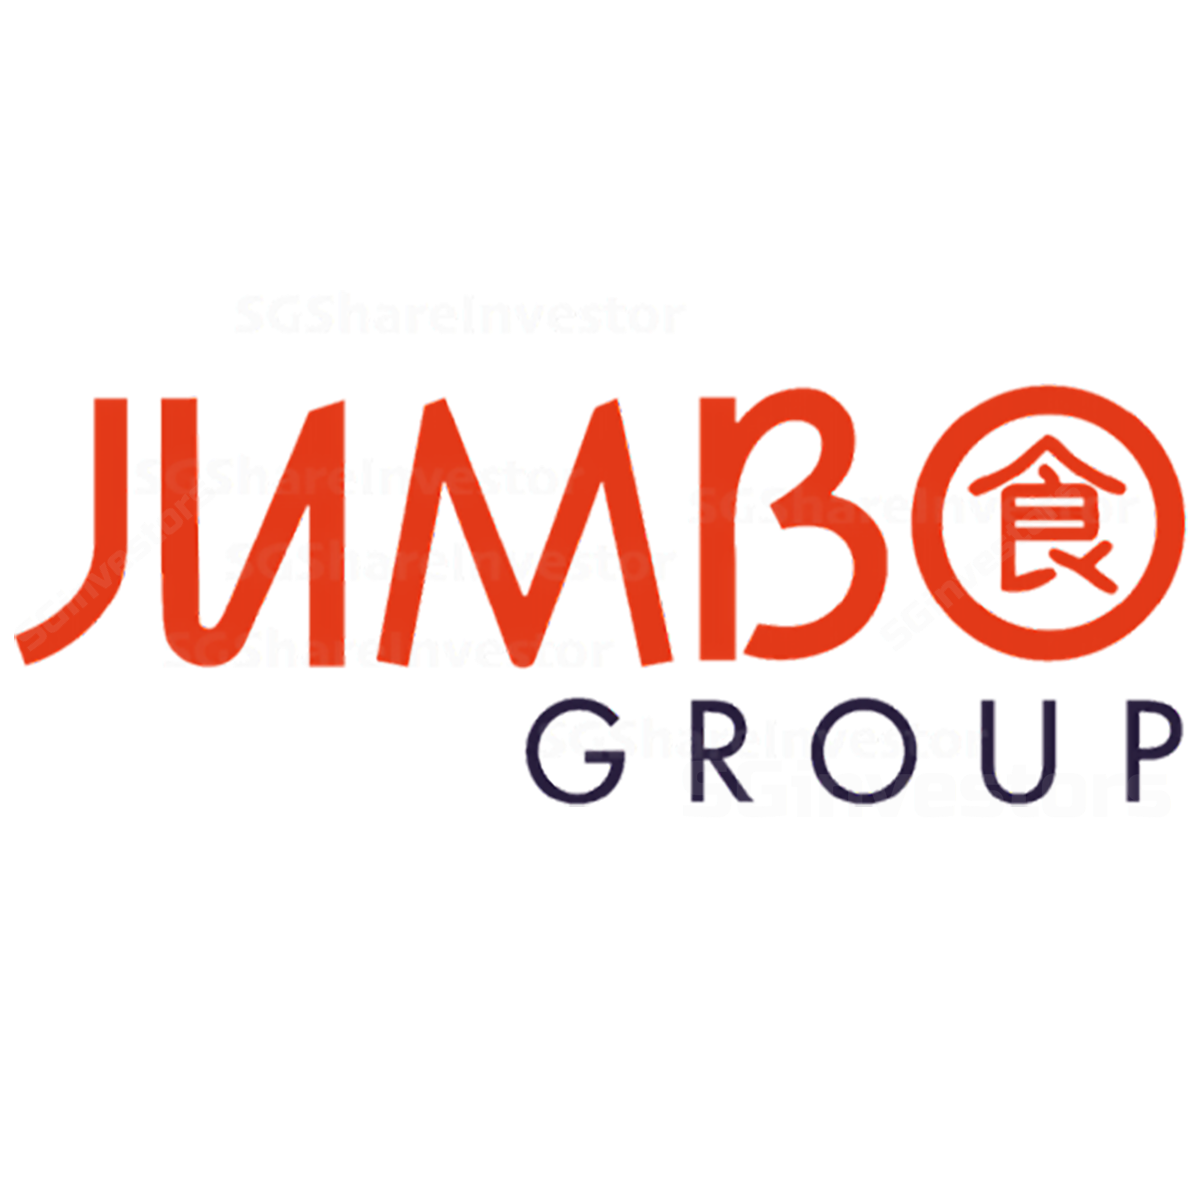 Jumbo Group (JUMBO SP) - UOB Kay Hian 2017-08-11: 3Q17 Results Below Expectations